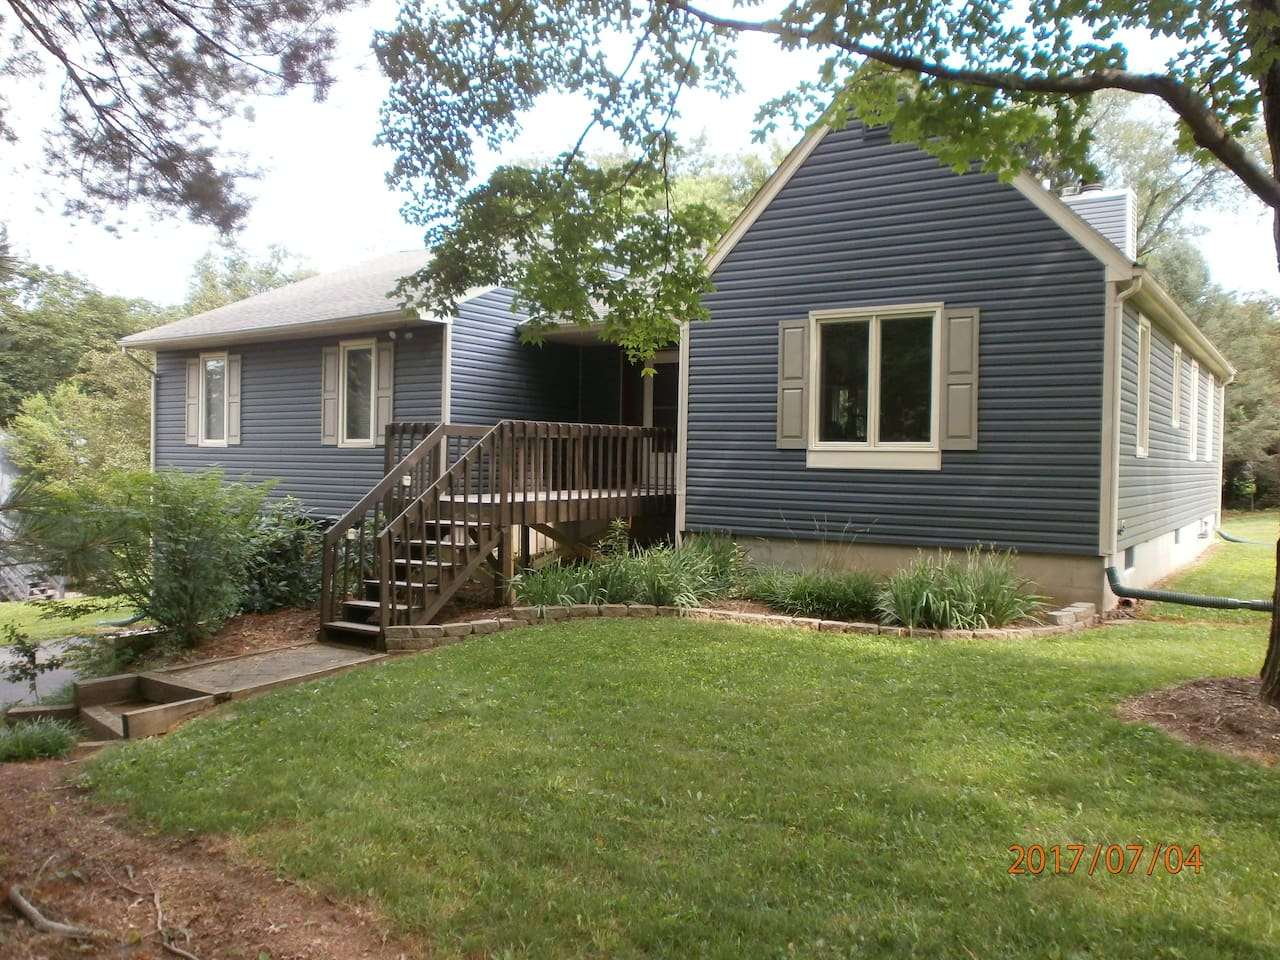 Private cul de sac location. Walk to town. Off street parking.